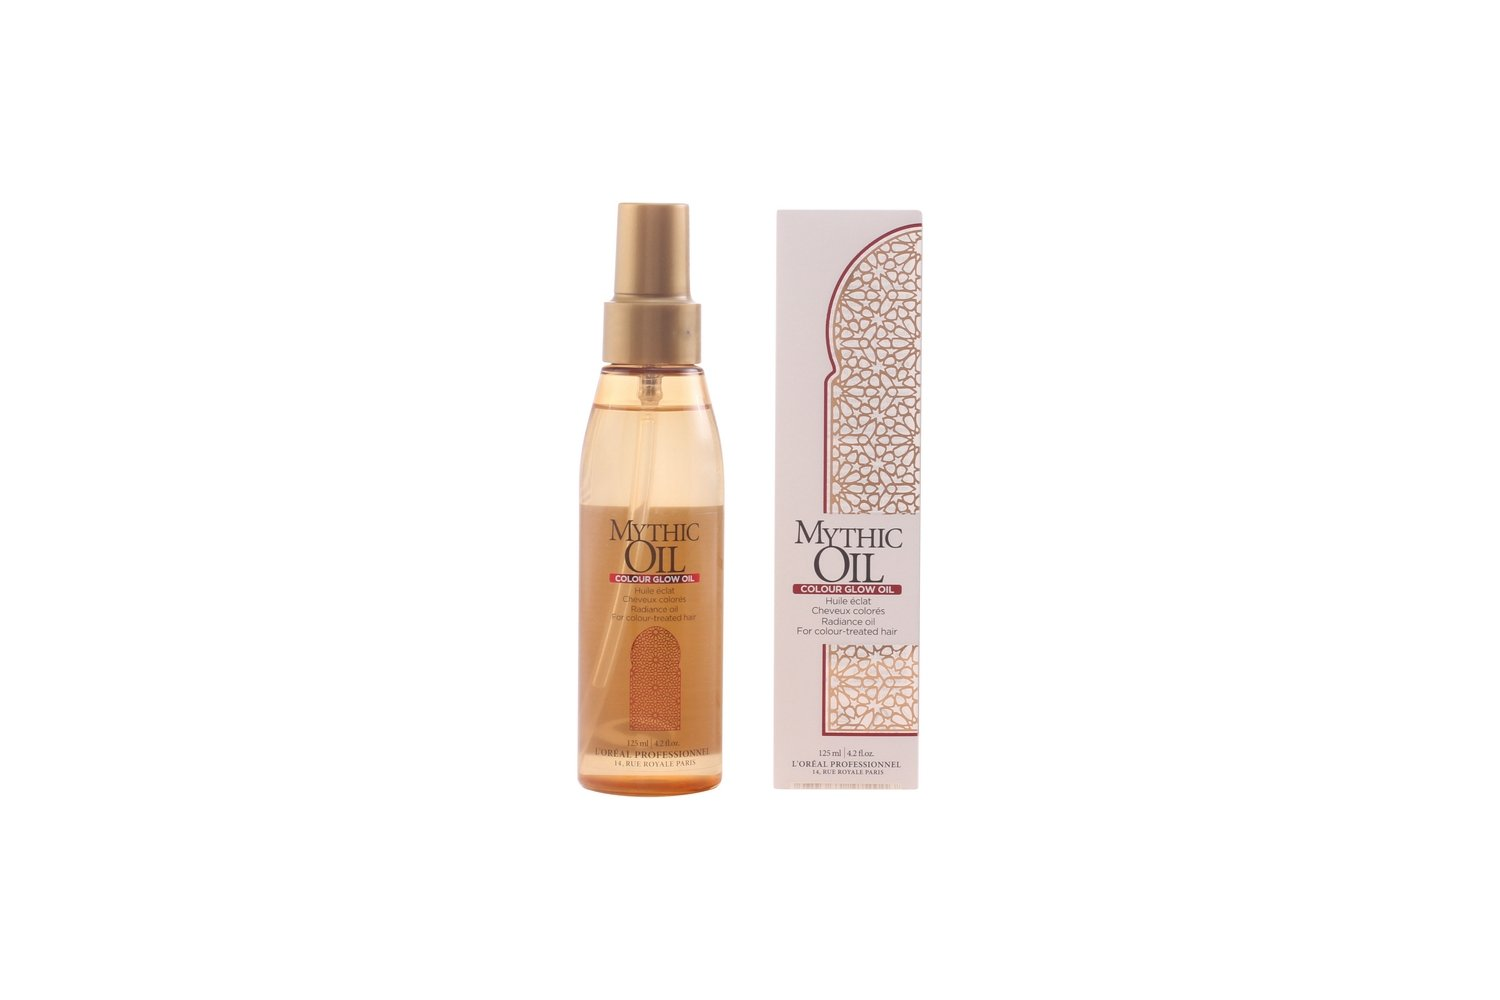 L'Oreal Mythic Oil Color Glow Oil, 4.2 Ounce